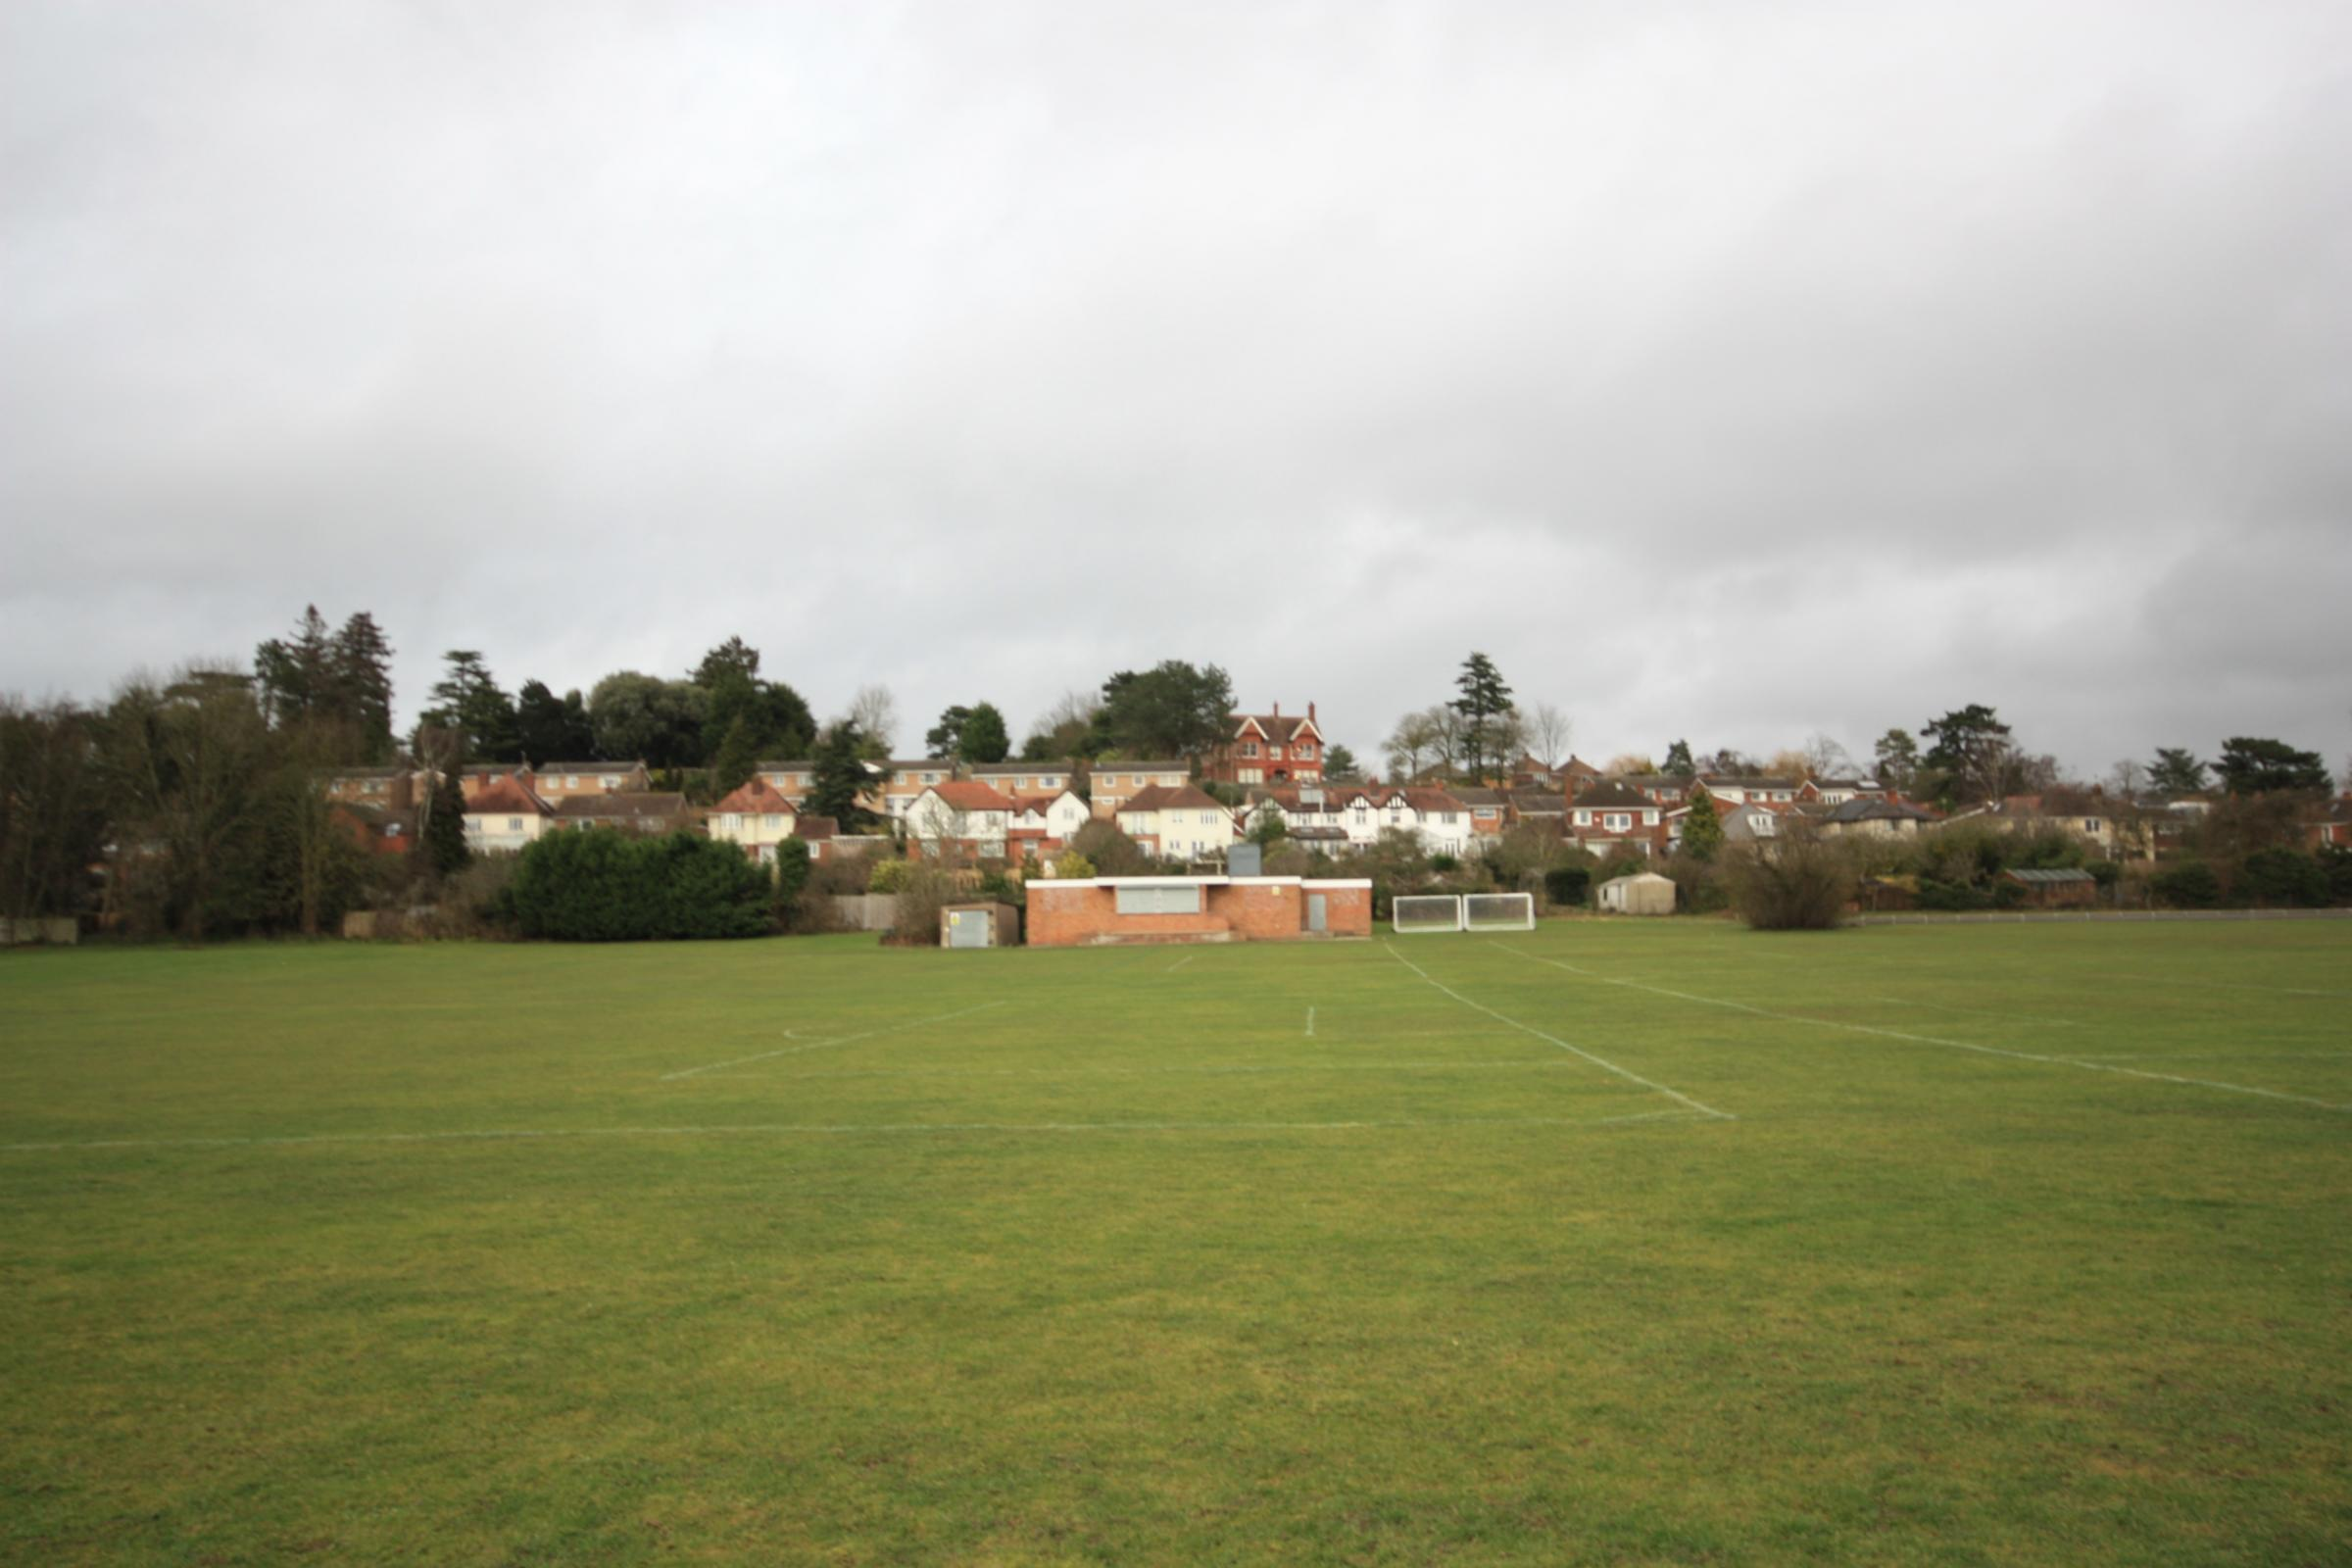 FOR SALE: A playing field in Battenhall Road is up for auction